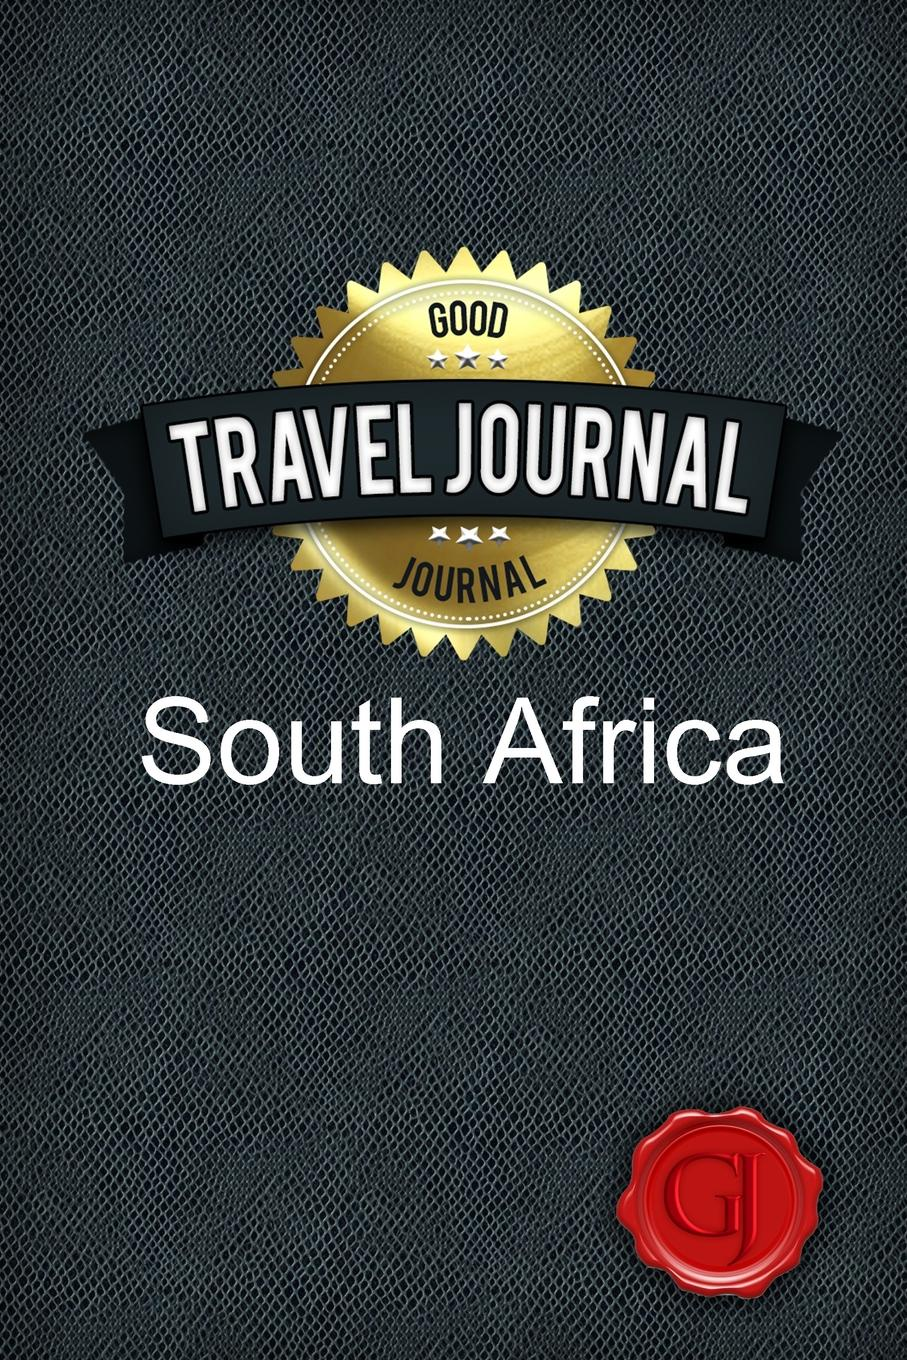 Good Journal Travel Journal South Africa